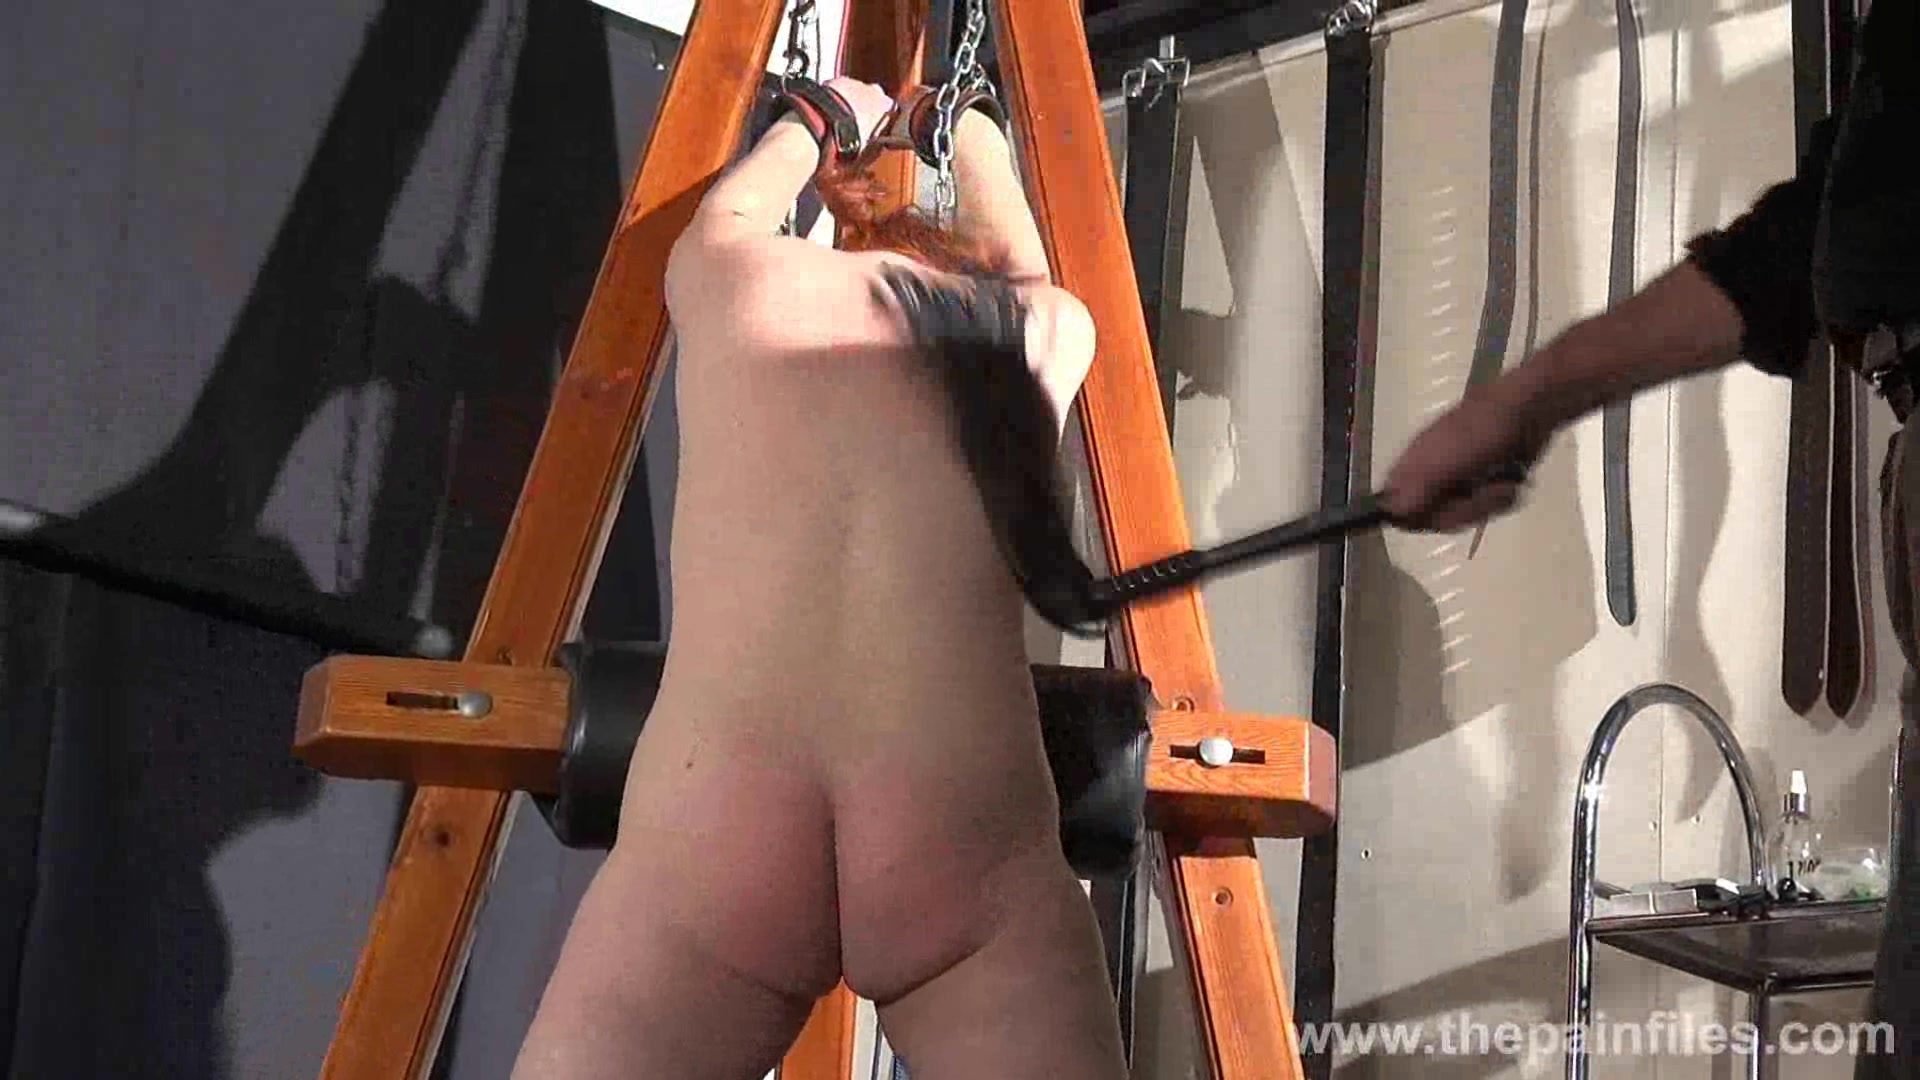 Tied to the whipping pole